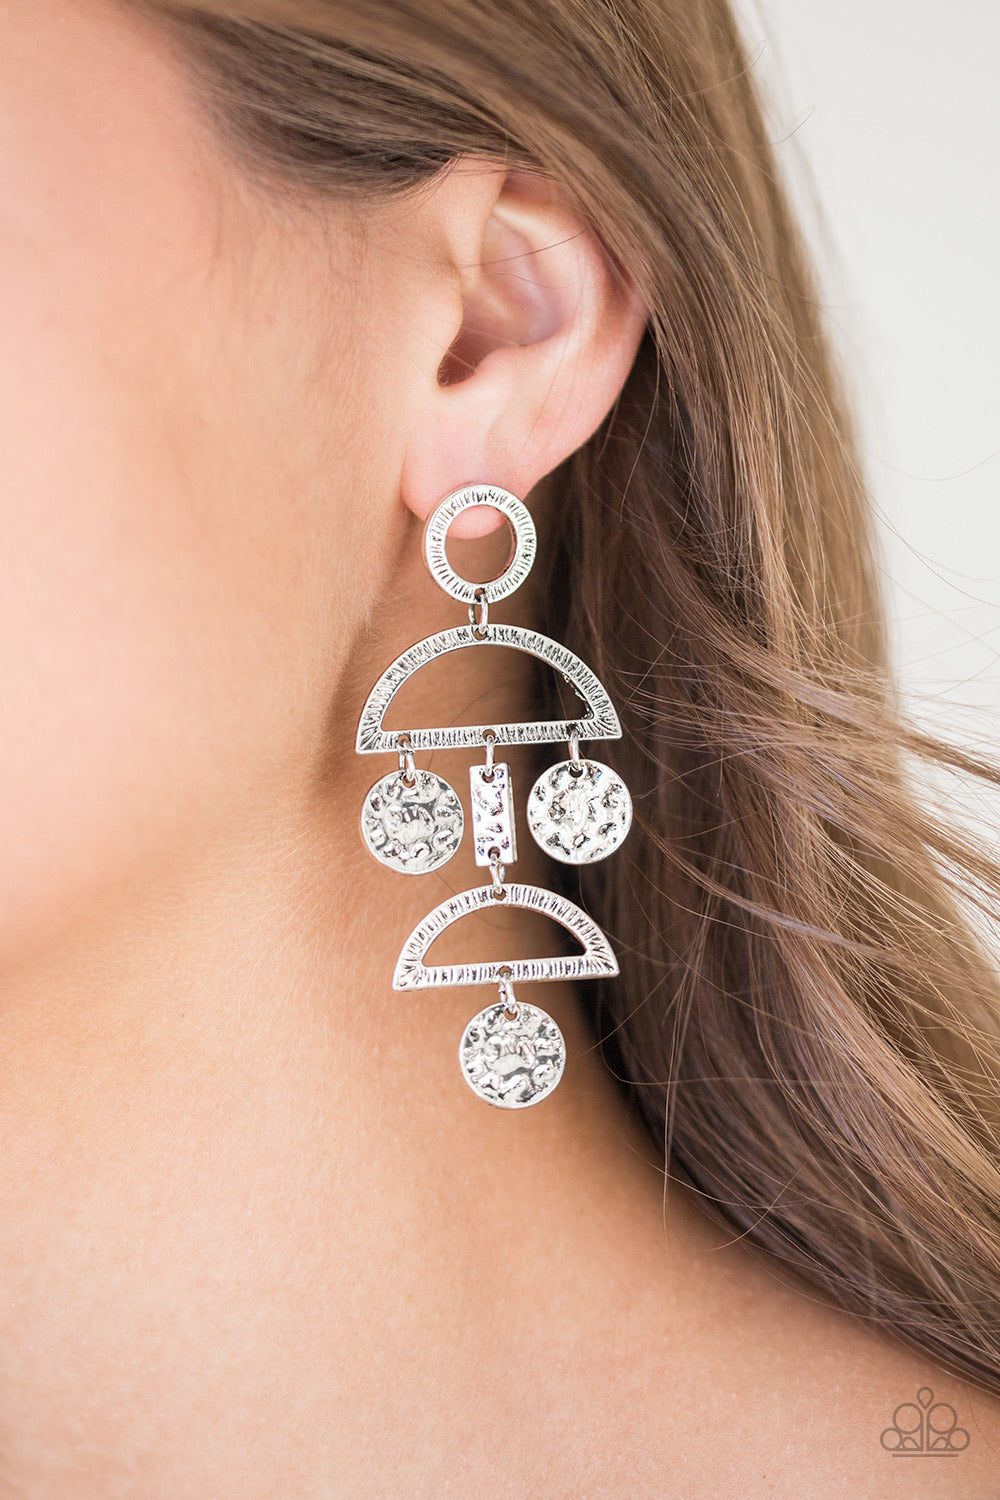 Incan Eclipse Silver Paparazzi Earring - JewelTonez Jewelry